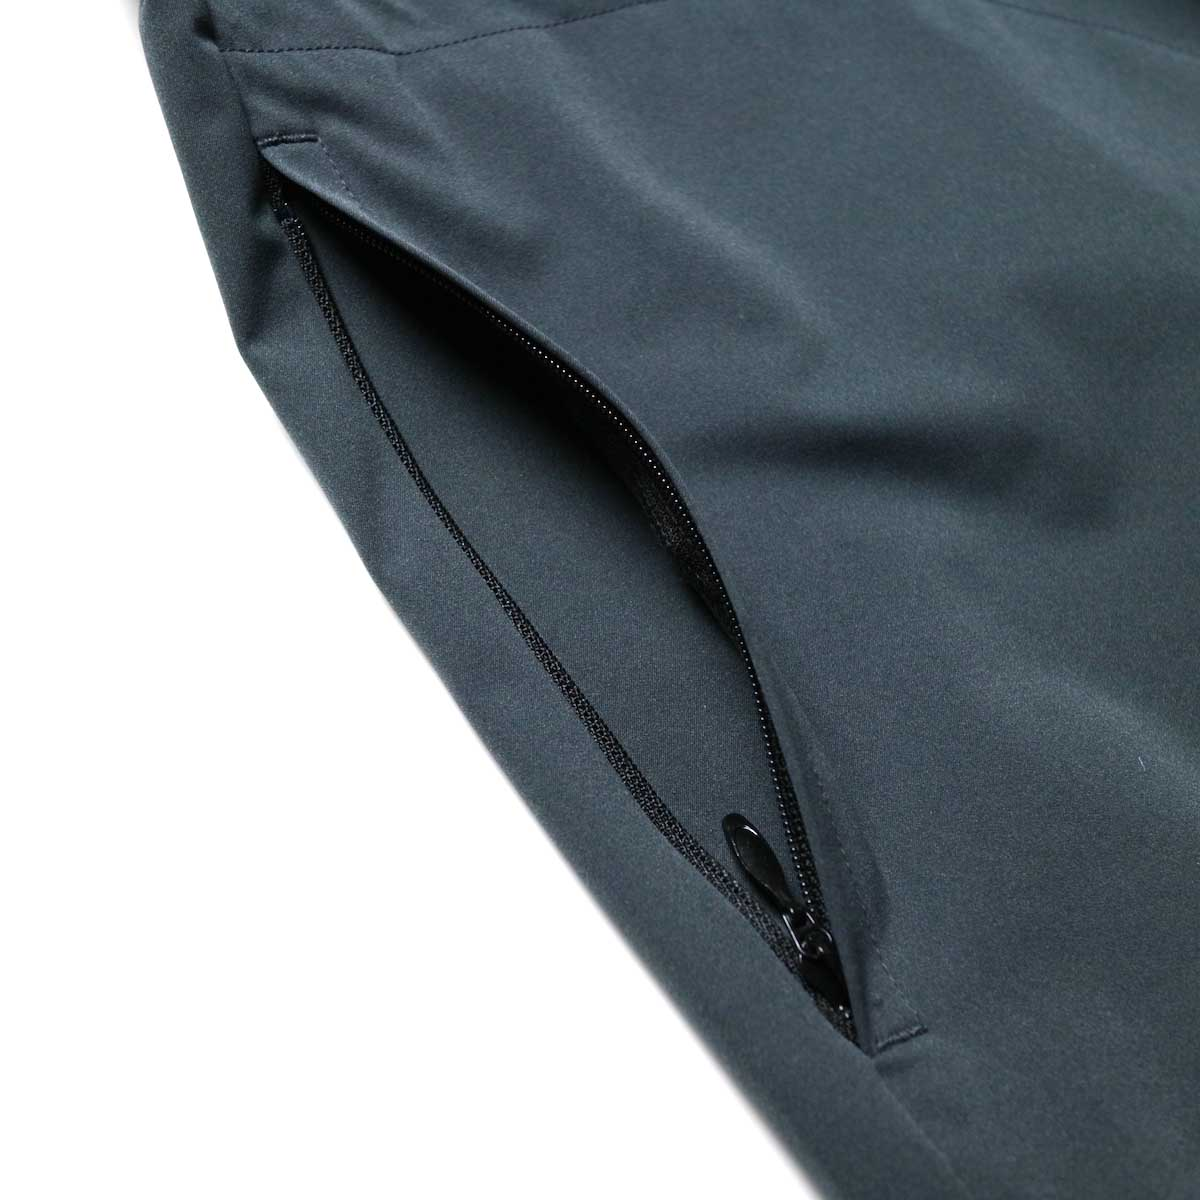 South2 West8 / Boulder Shirt -Poly Stretch Twill (Charcoal)ポケット